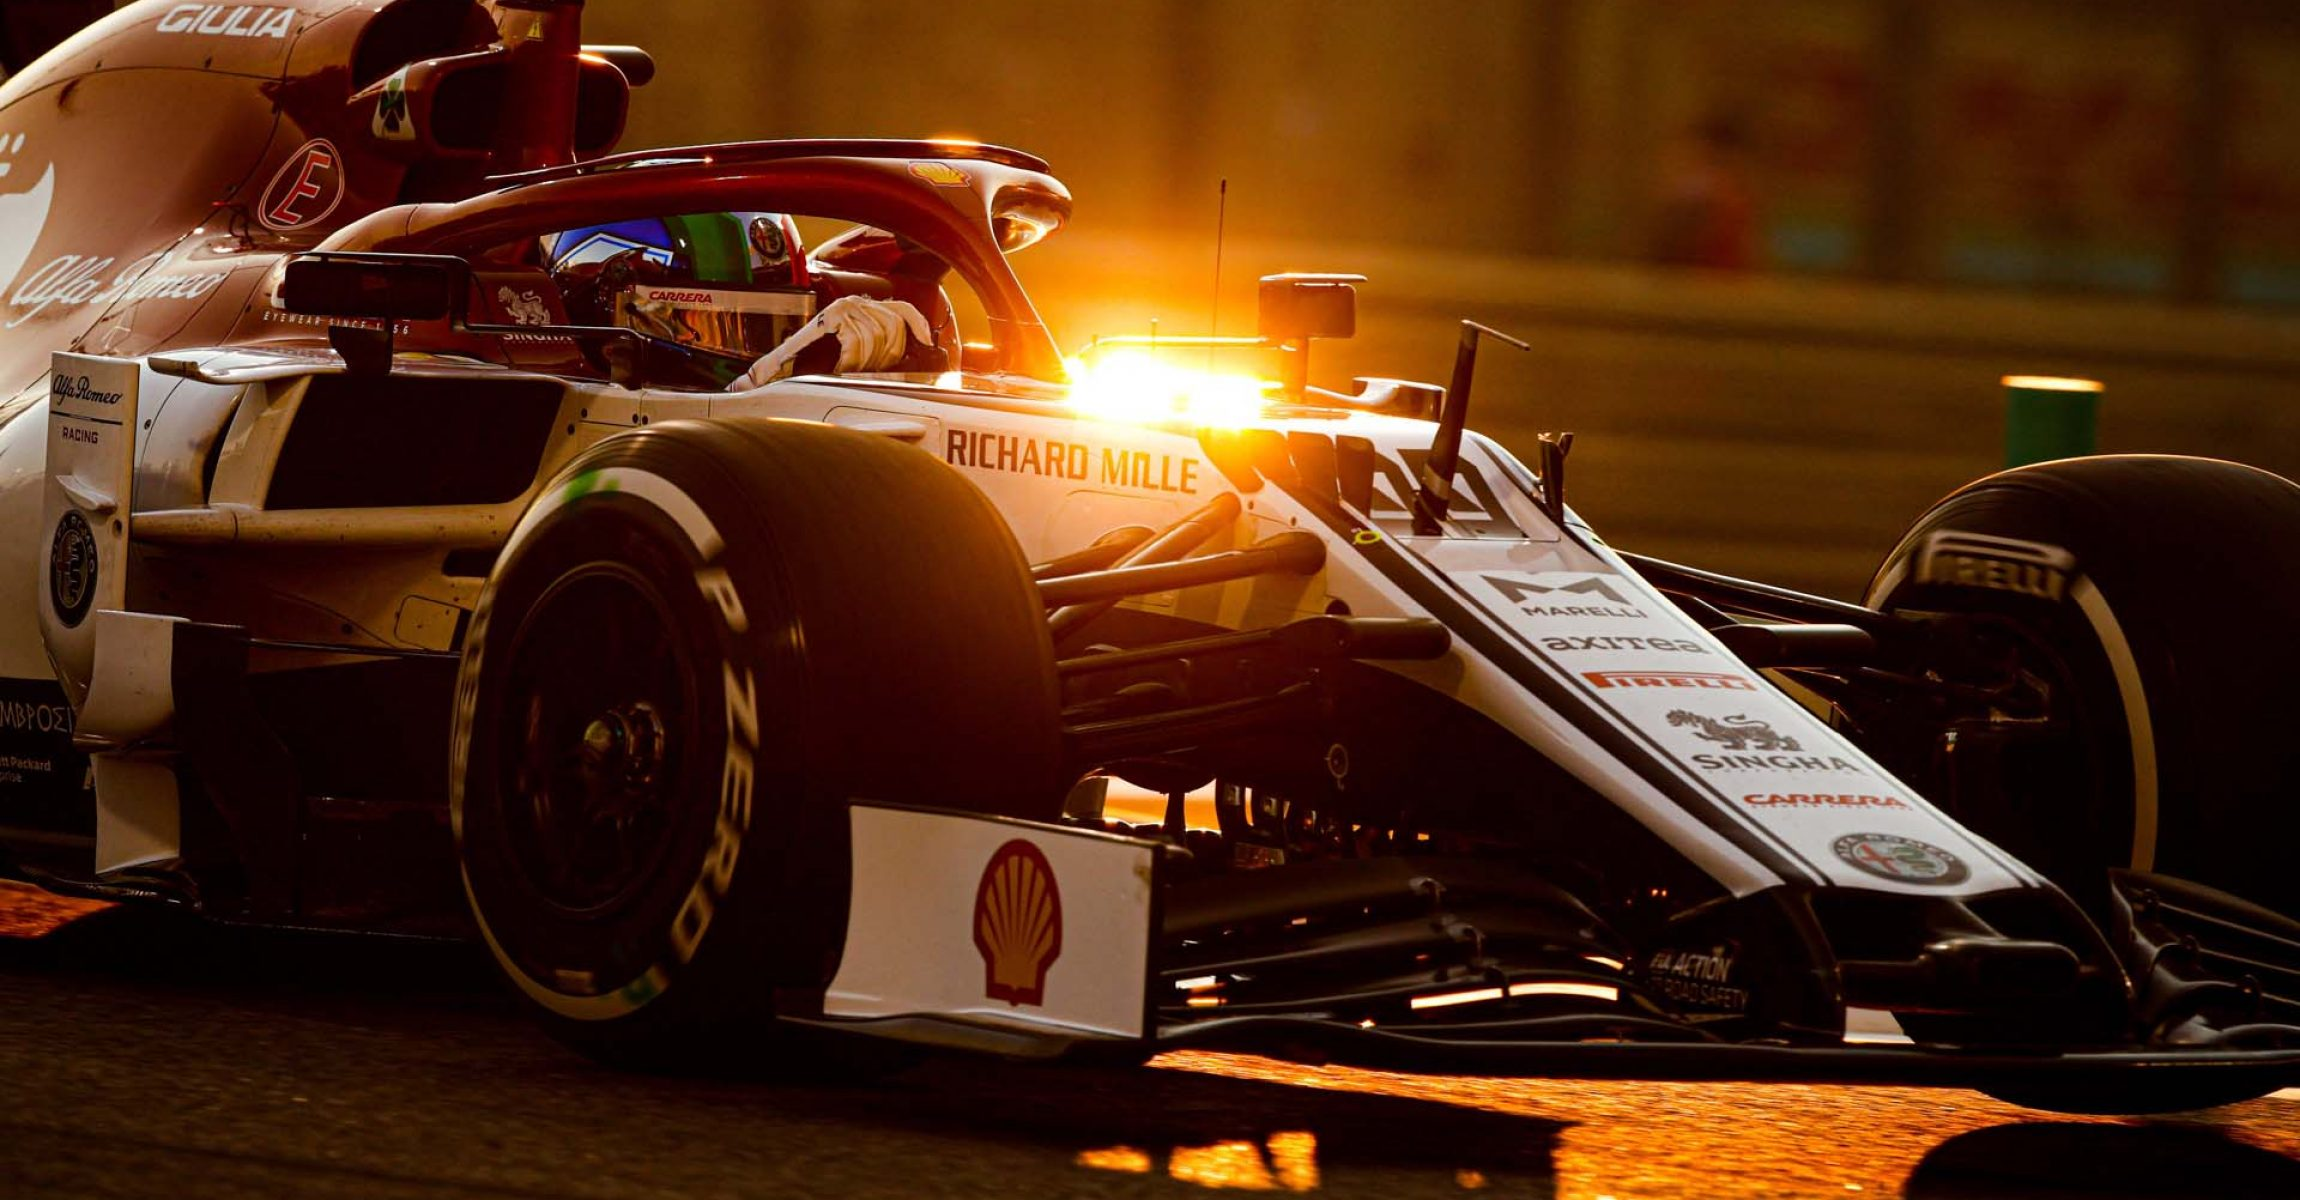 99 GIOVINAZZI Antonio (ita), Alfa Romeo Racing C38, action during the 2019 Formula One World Championship, Abu Dhabi Grand Prix from November 28 to december 1 in Yas Marina - Photo Florent Gooden / DPPI